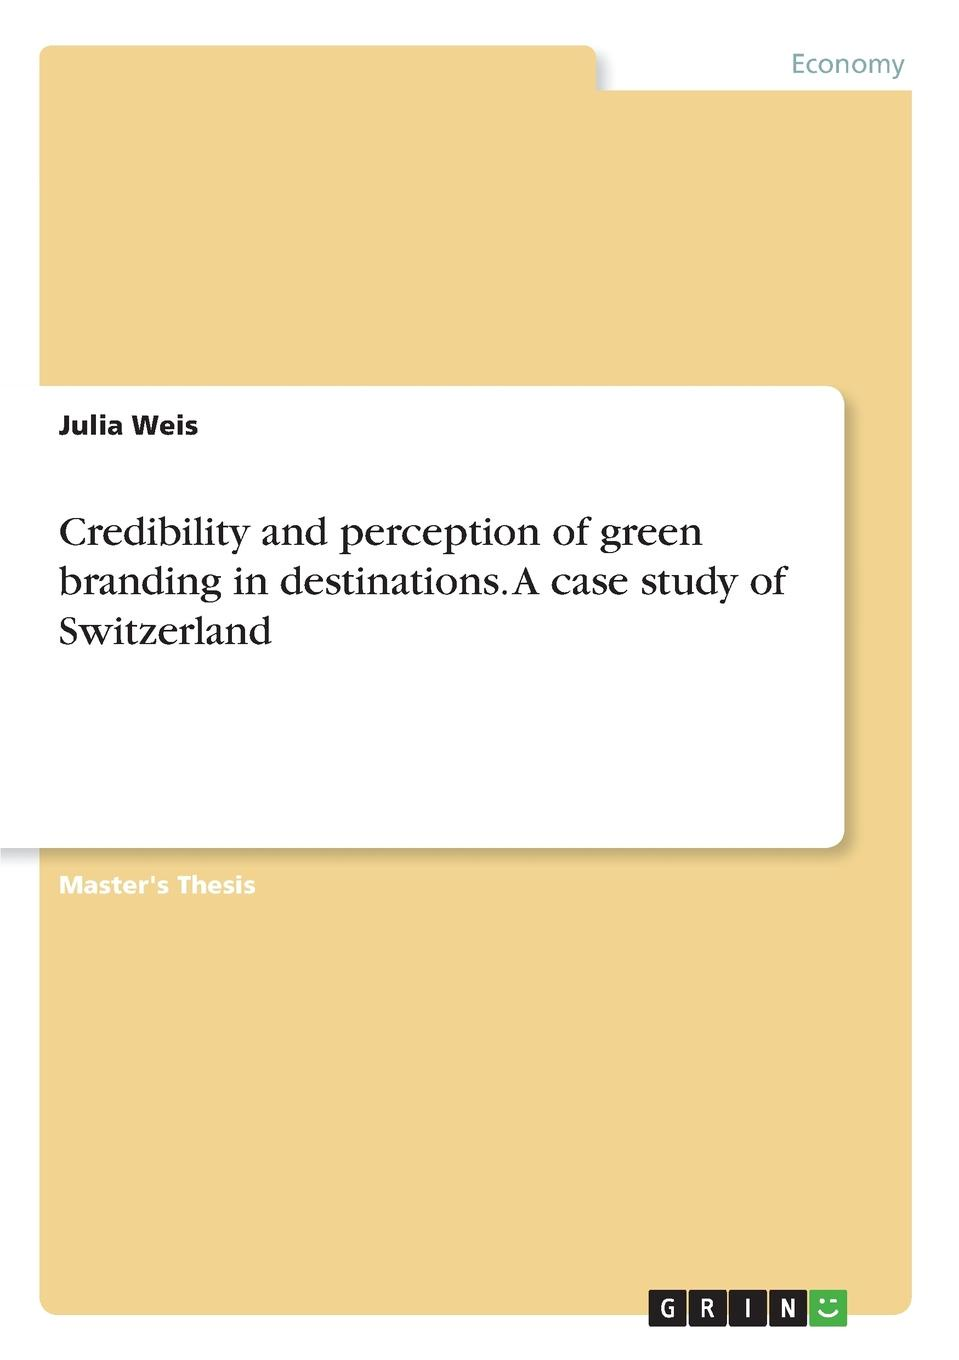 Julia Weis Credibility and perception of green branding in destinations. A case study of Switzerland